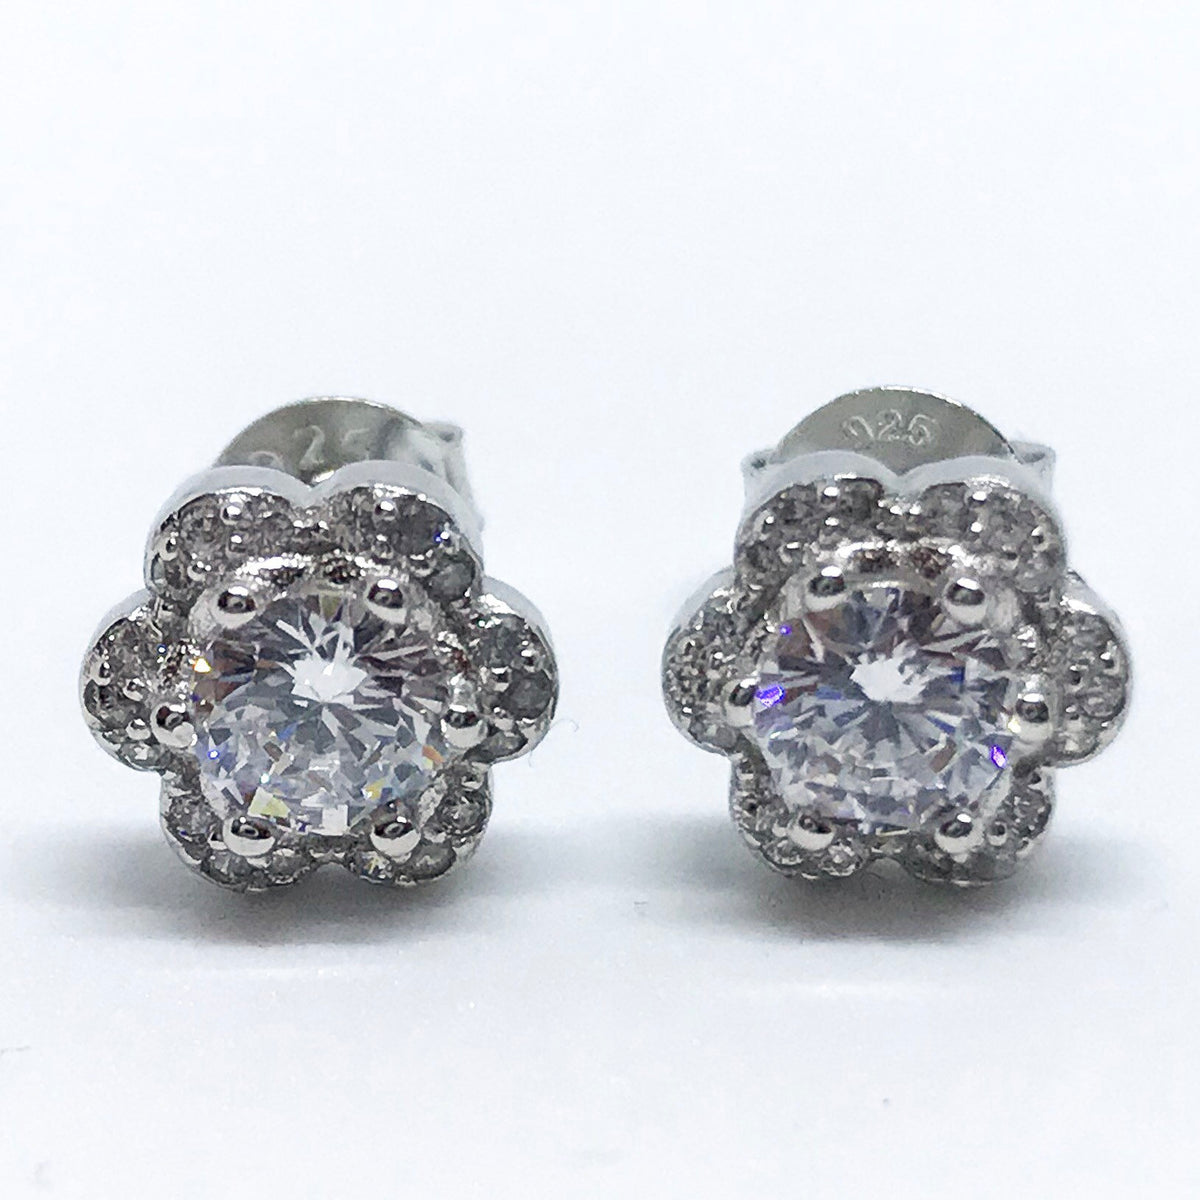 NEW 14K White Gold Layered on Sterling Silver Flower Stud Earrings